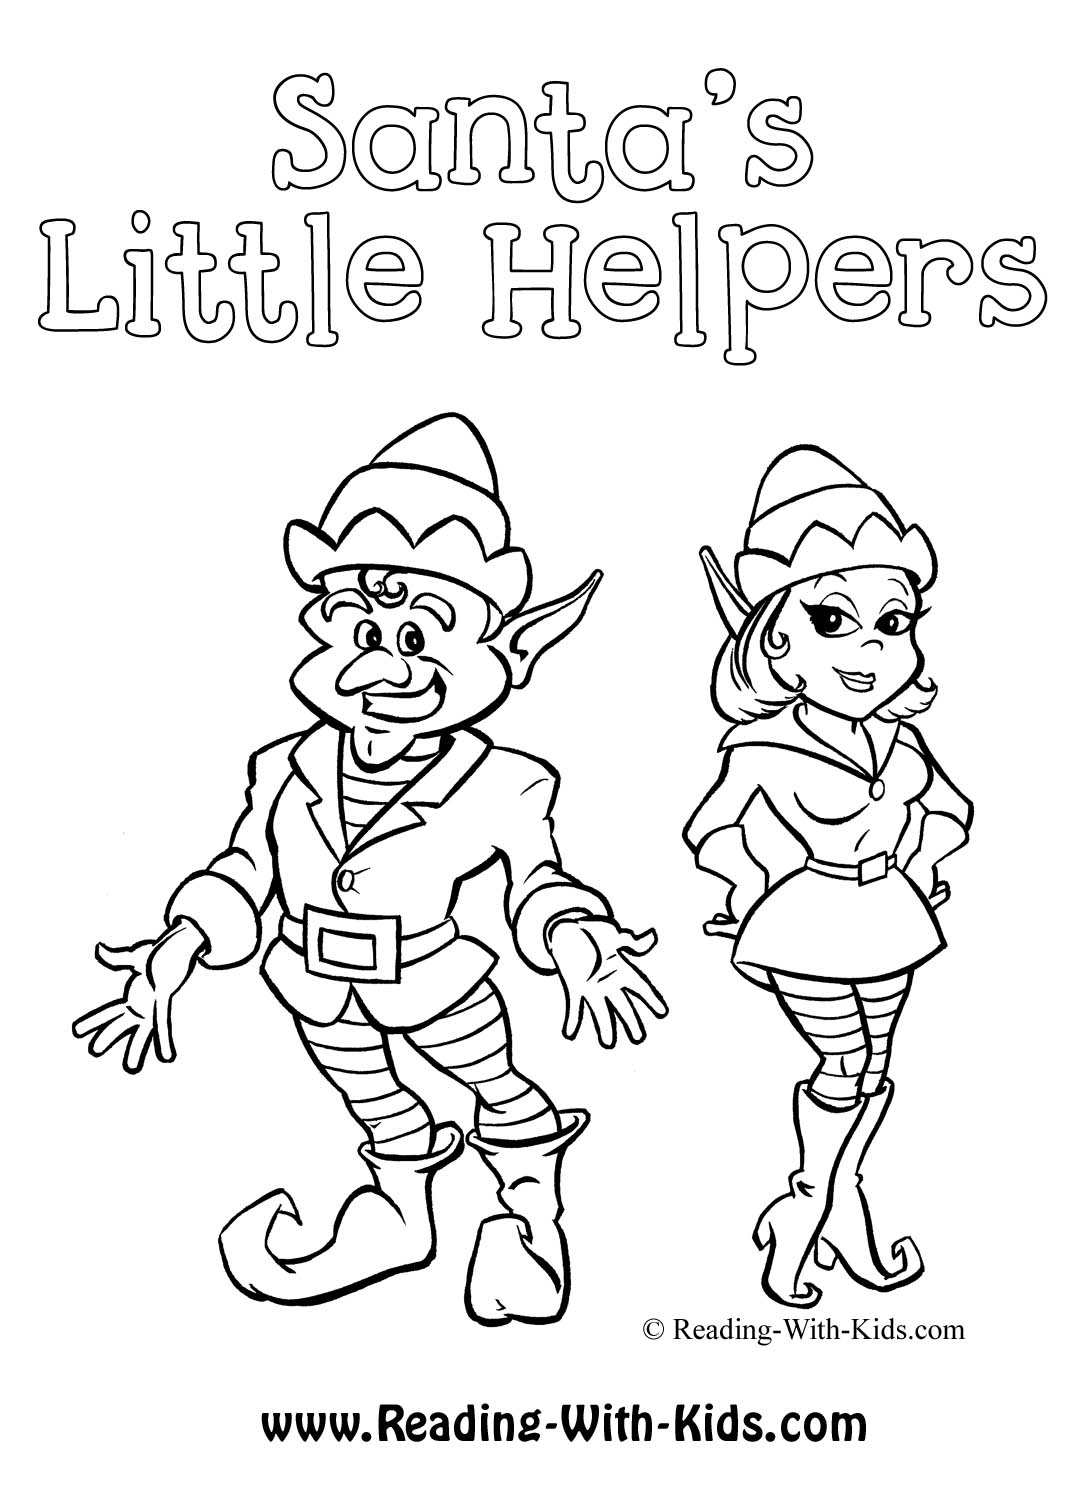 Elf Coloring Pages Girl At Getdrawings Com Free For Personal Use